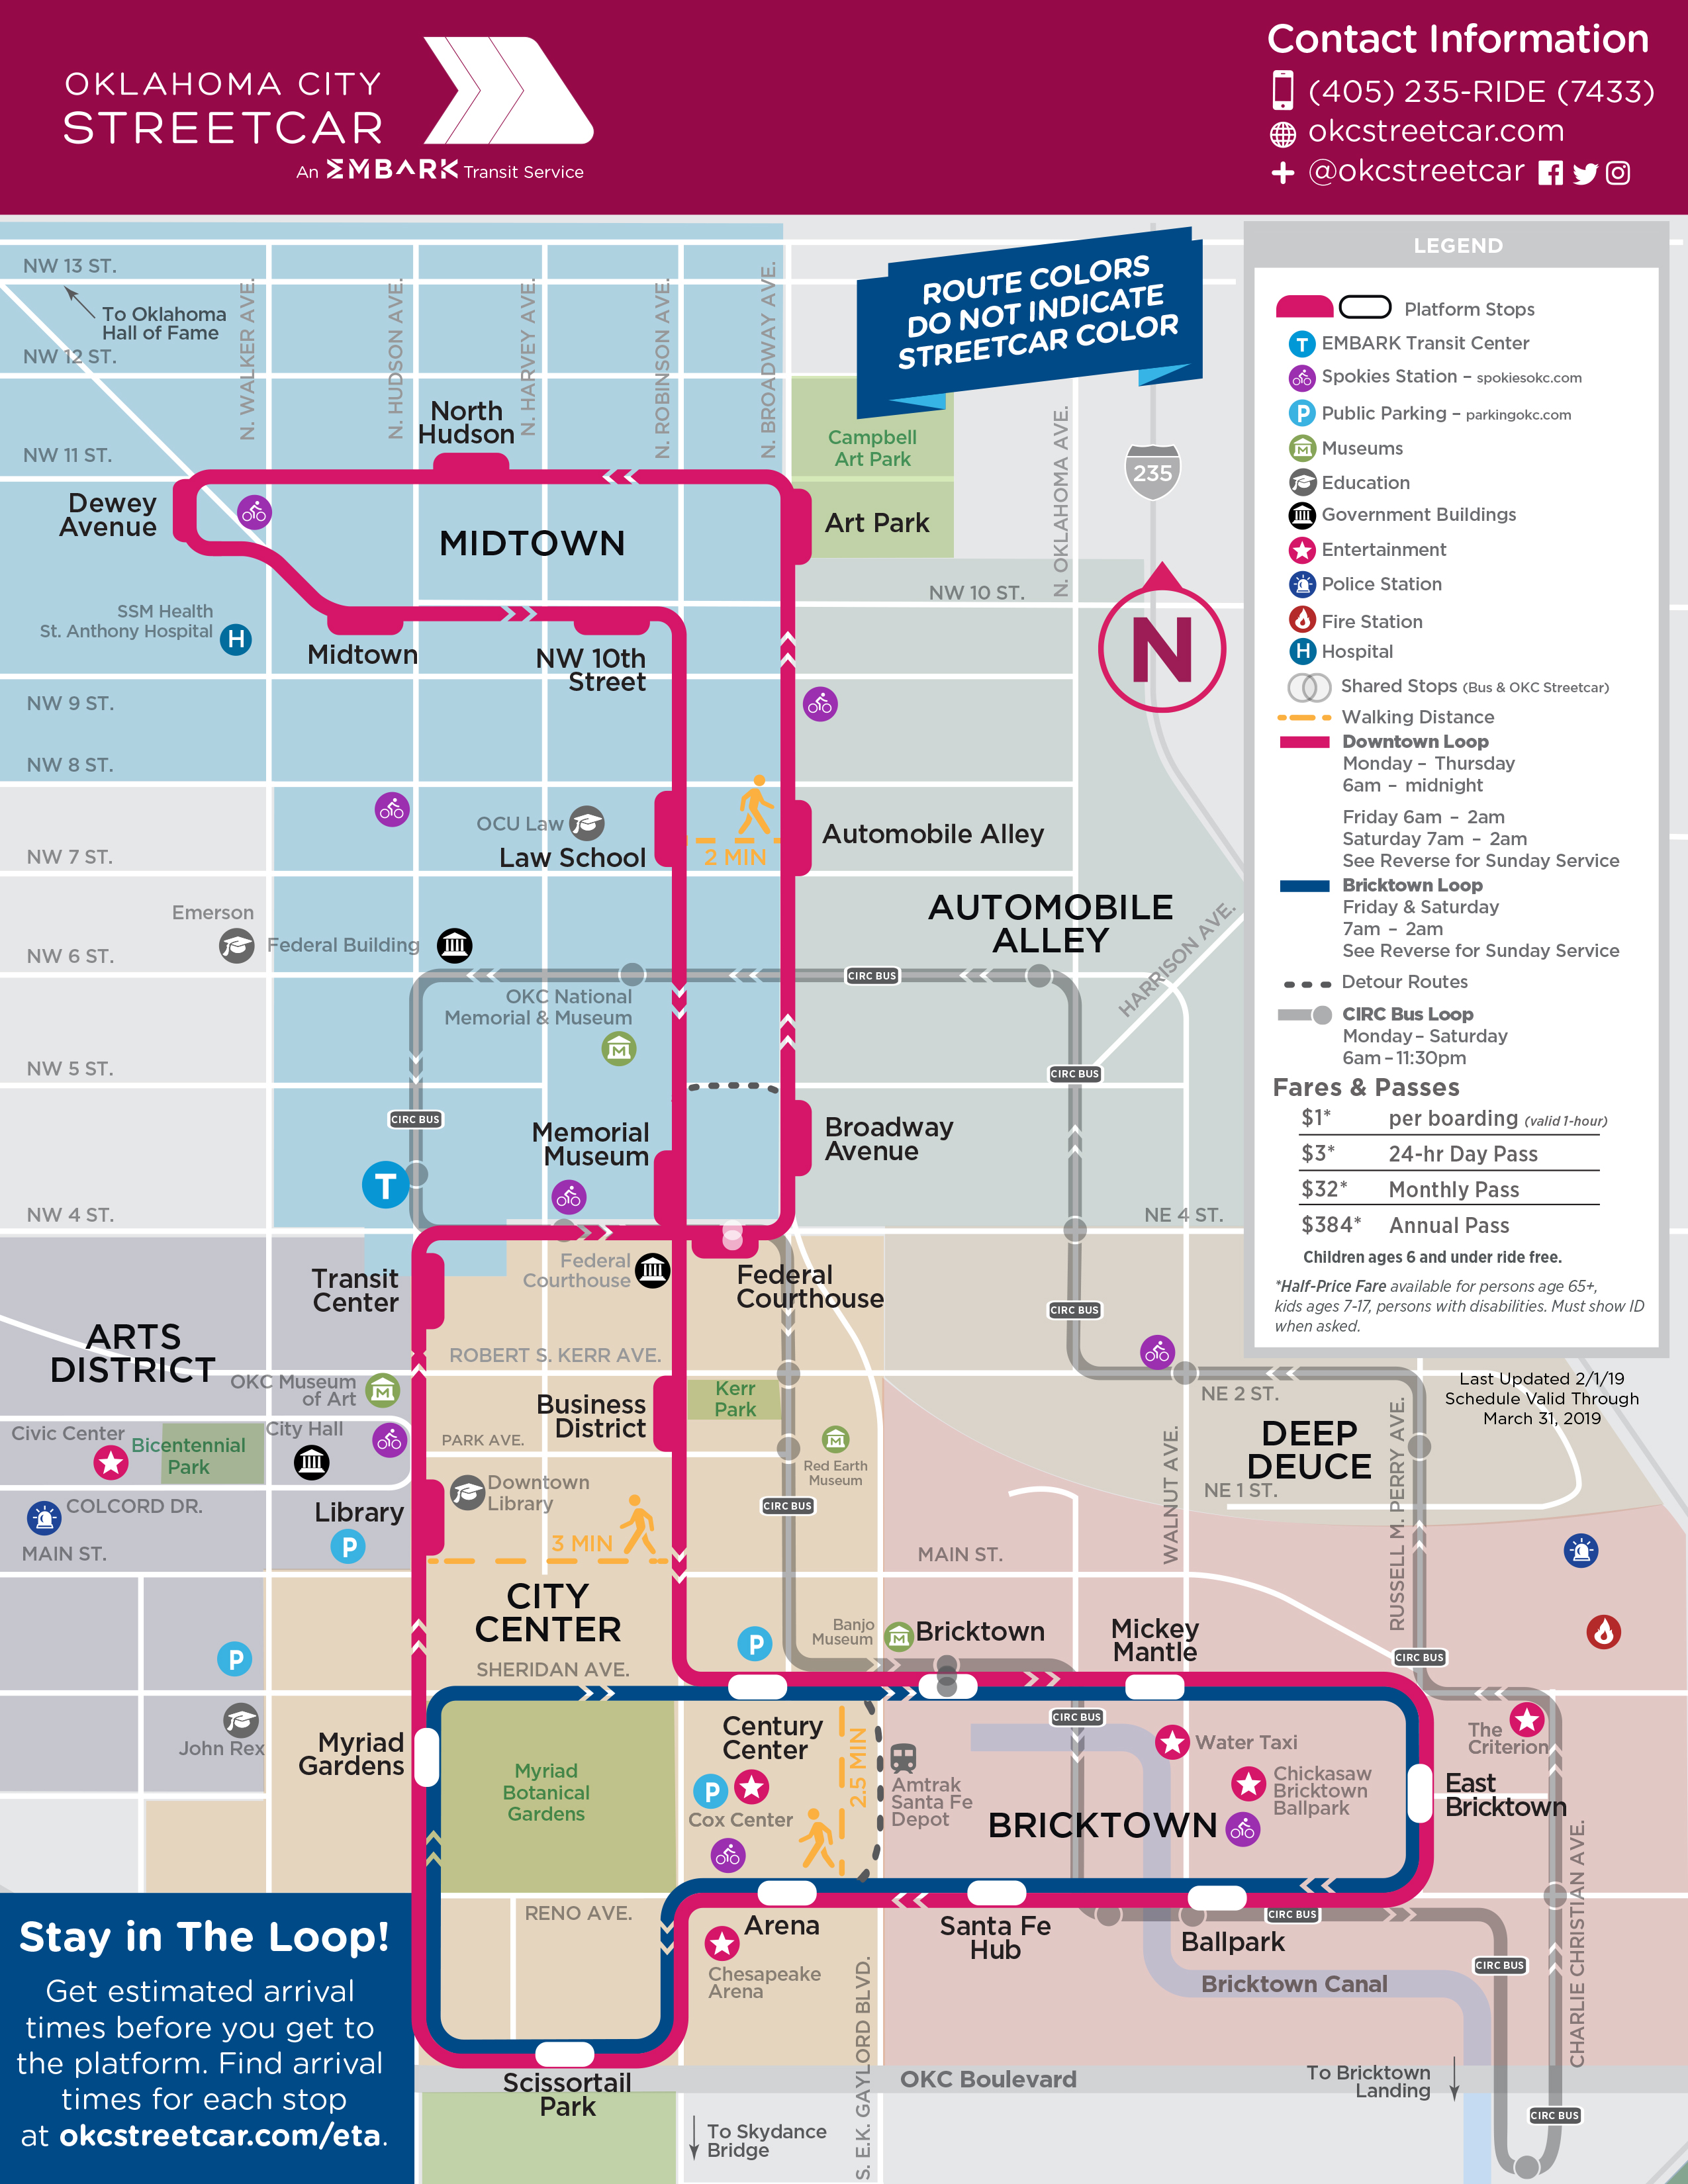 photograph relating to Loop Schedule Printable identified as Way Map Oklahoma Town Streetcar